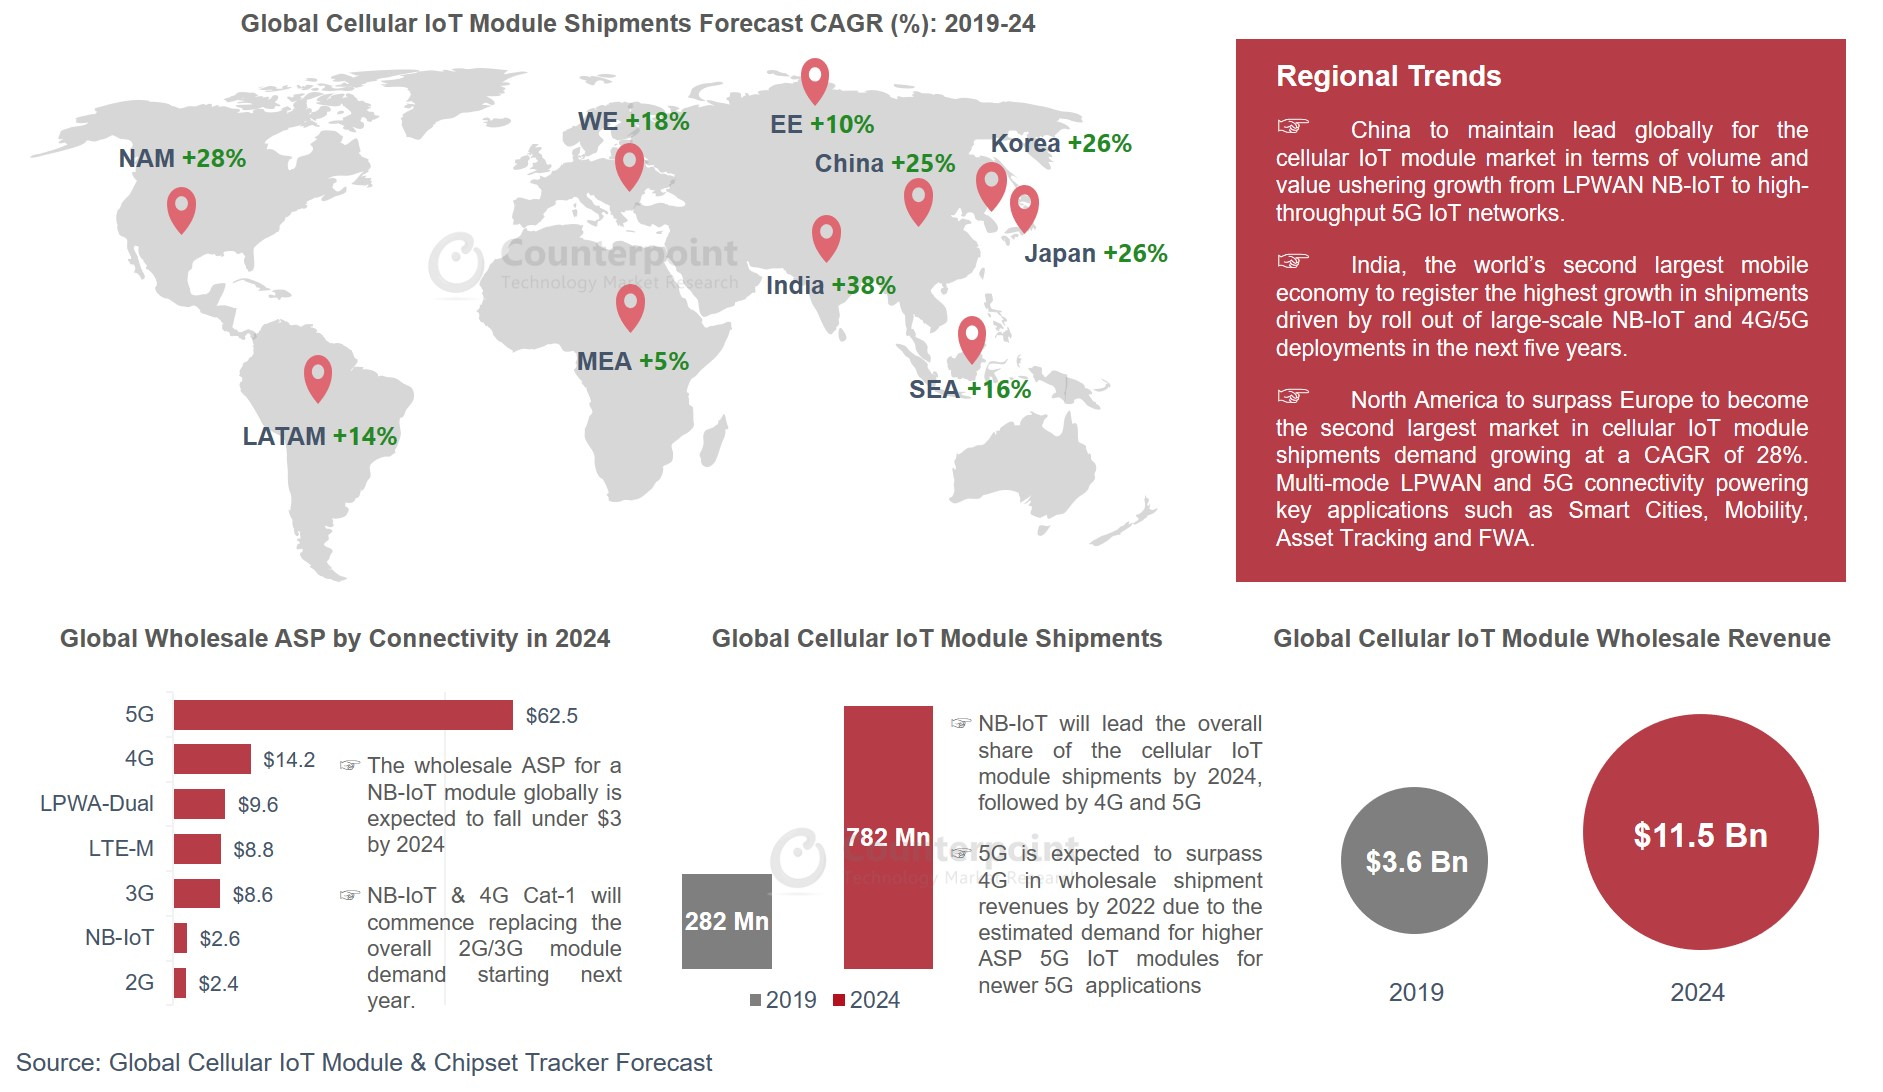 Global Cellular IoT Module Forecast Counterpoint